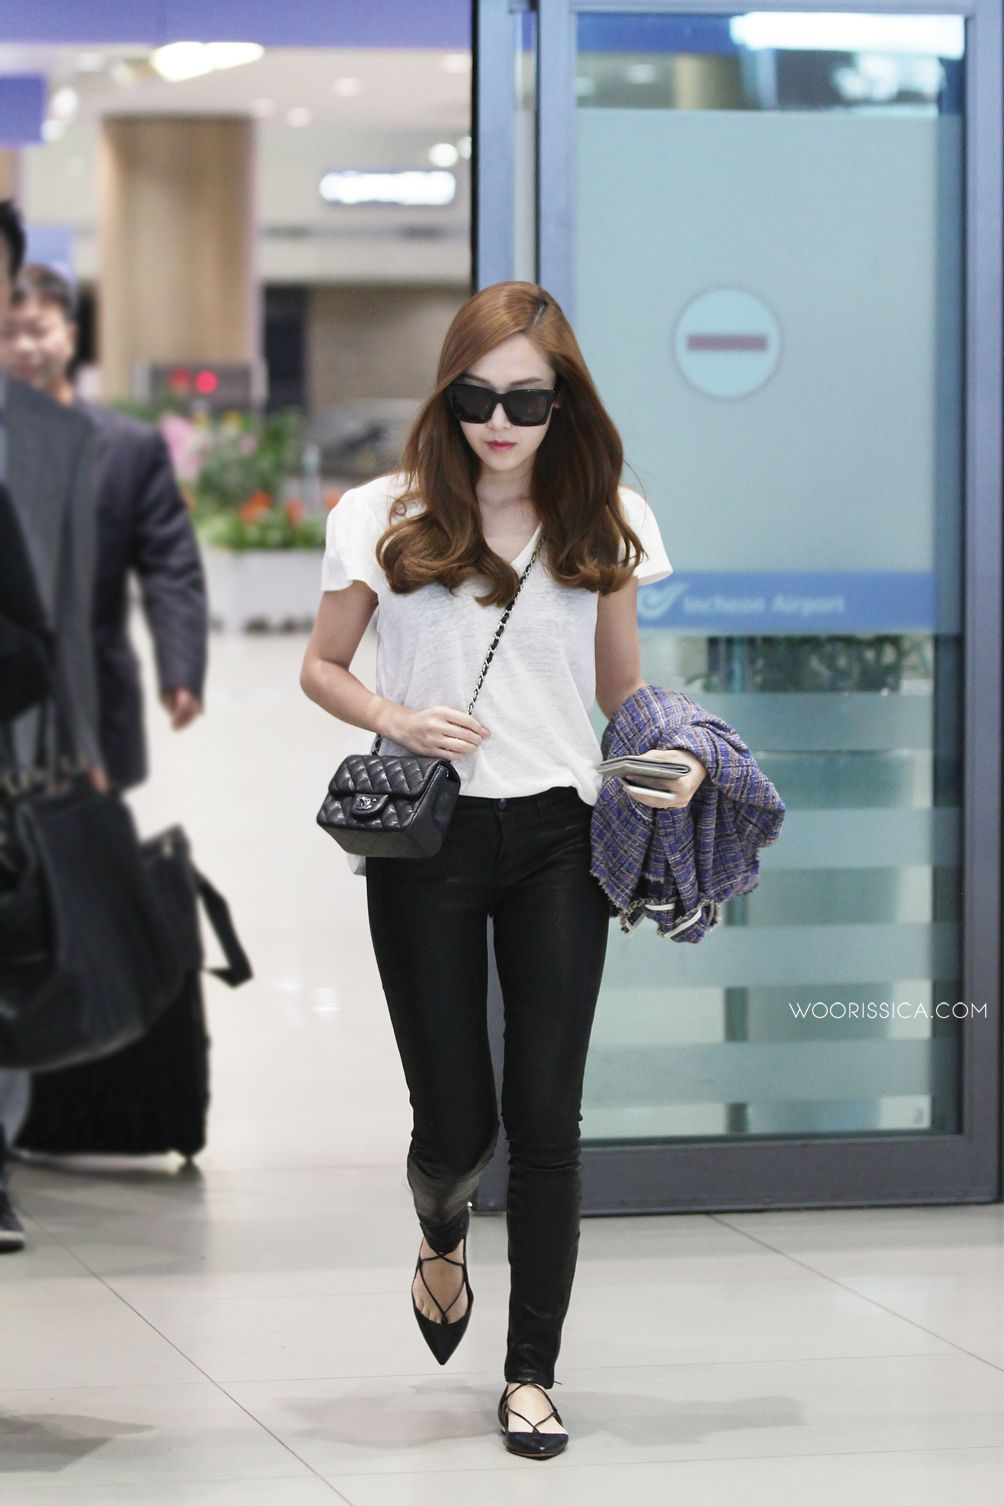 Jessica Airport Fashion 2015 Jessica Jung Fashion Kpop Fashion Korean Fashion